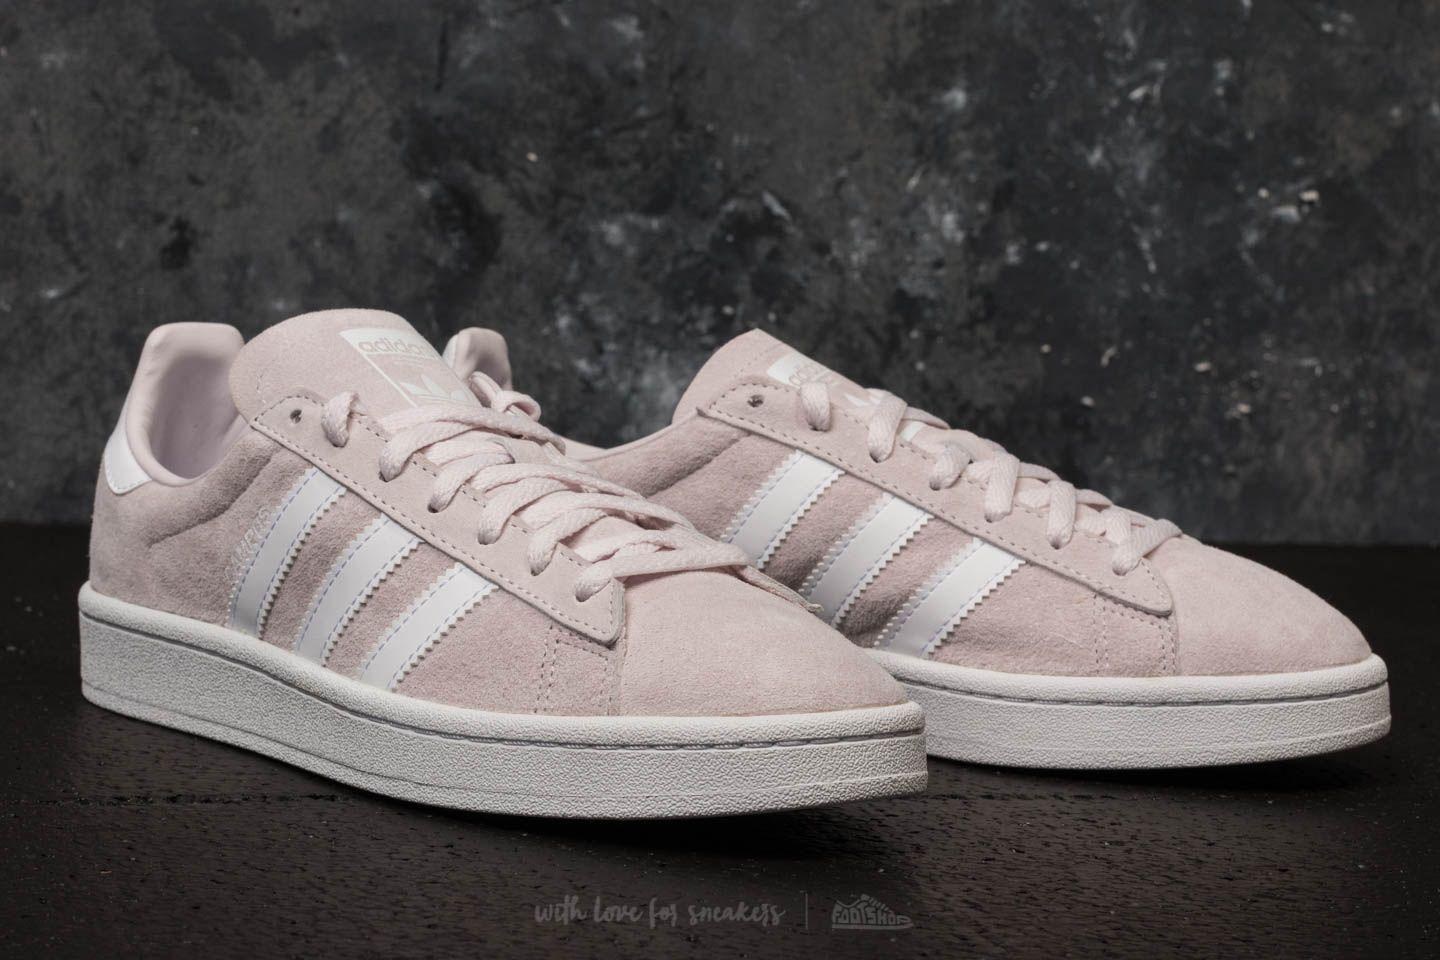 half off 027d1 67e21 adidas-originals--Adidas-Campus-W-Orchid-Tint-Ftw-White-Crystal-White.jpeg